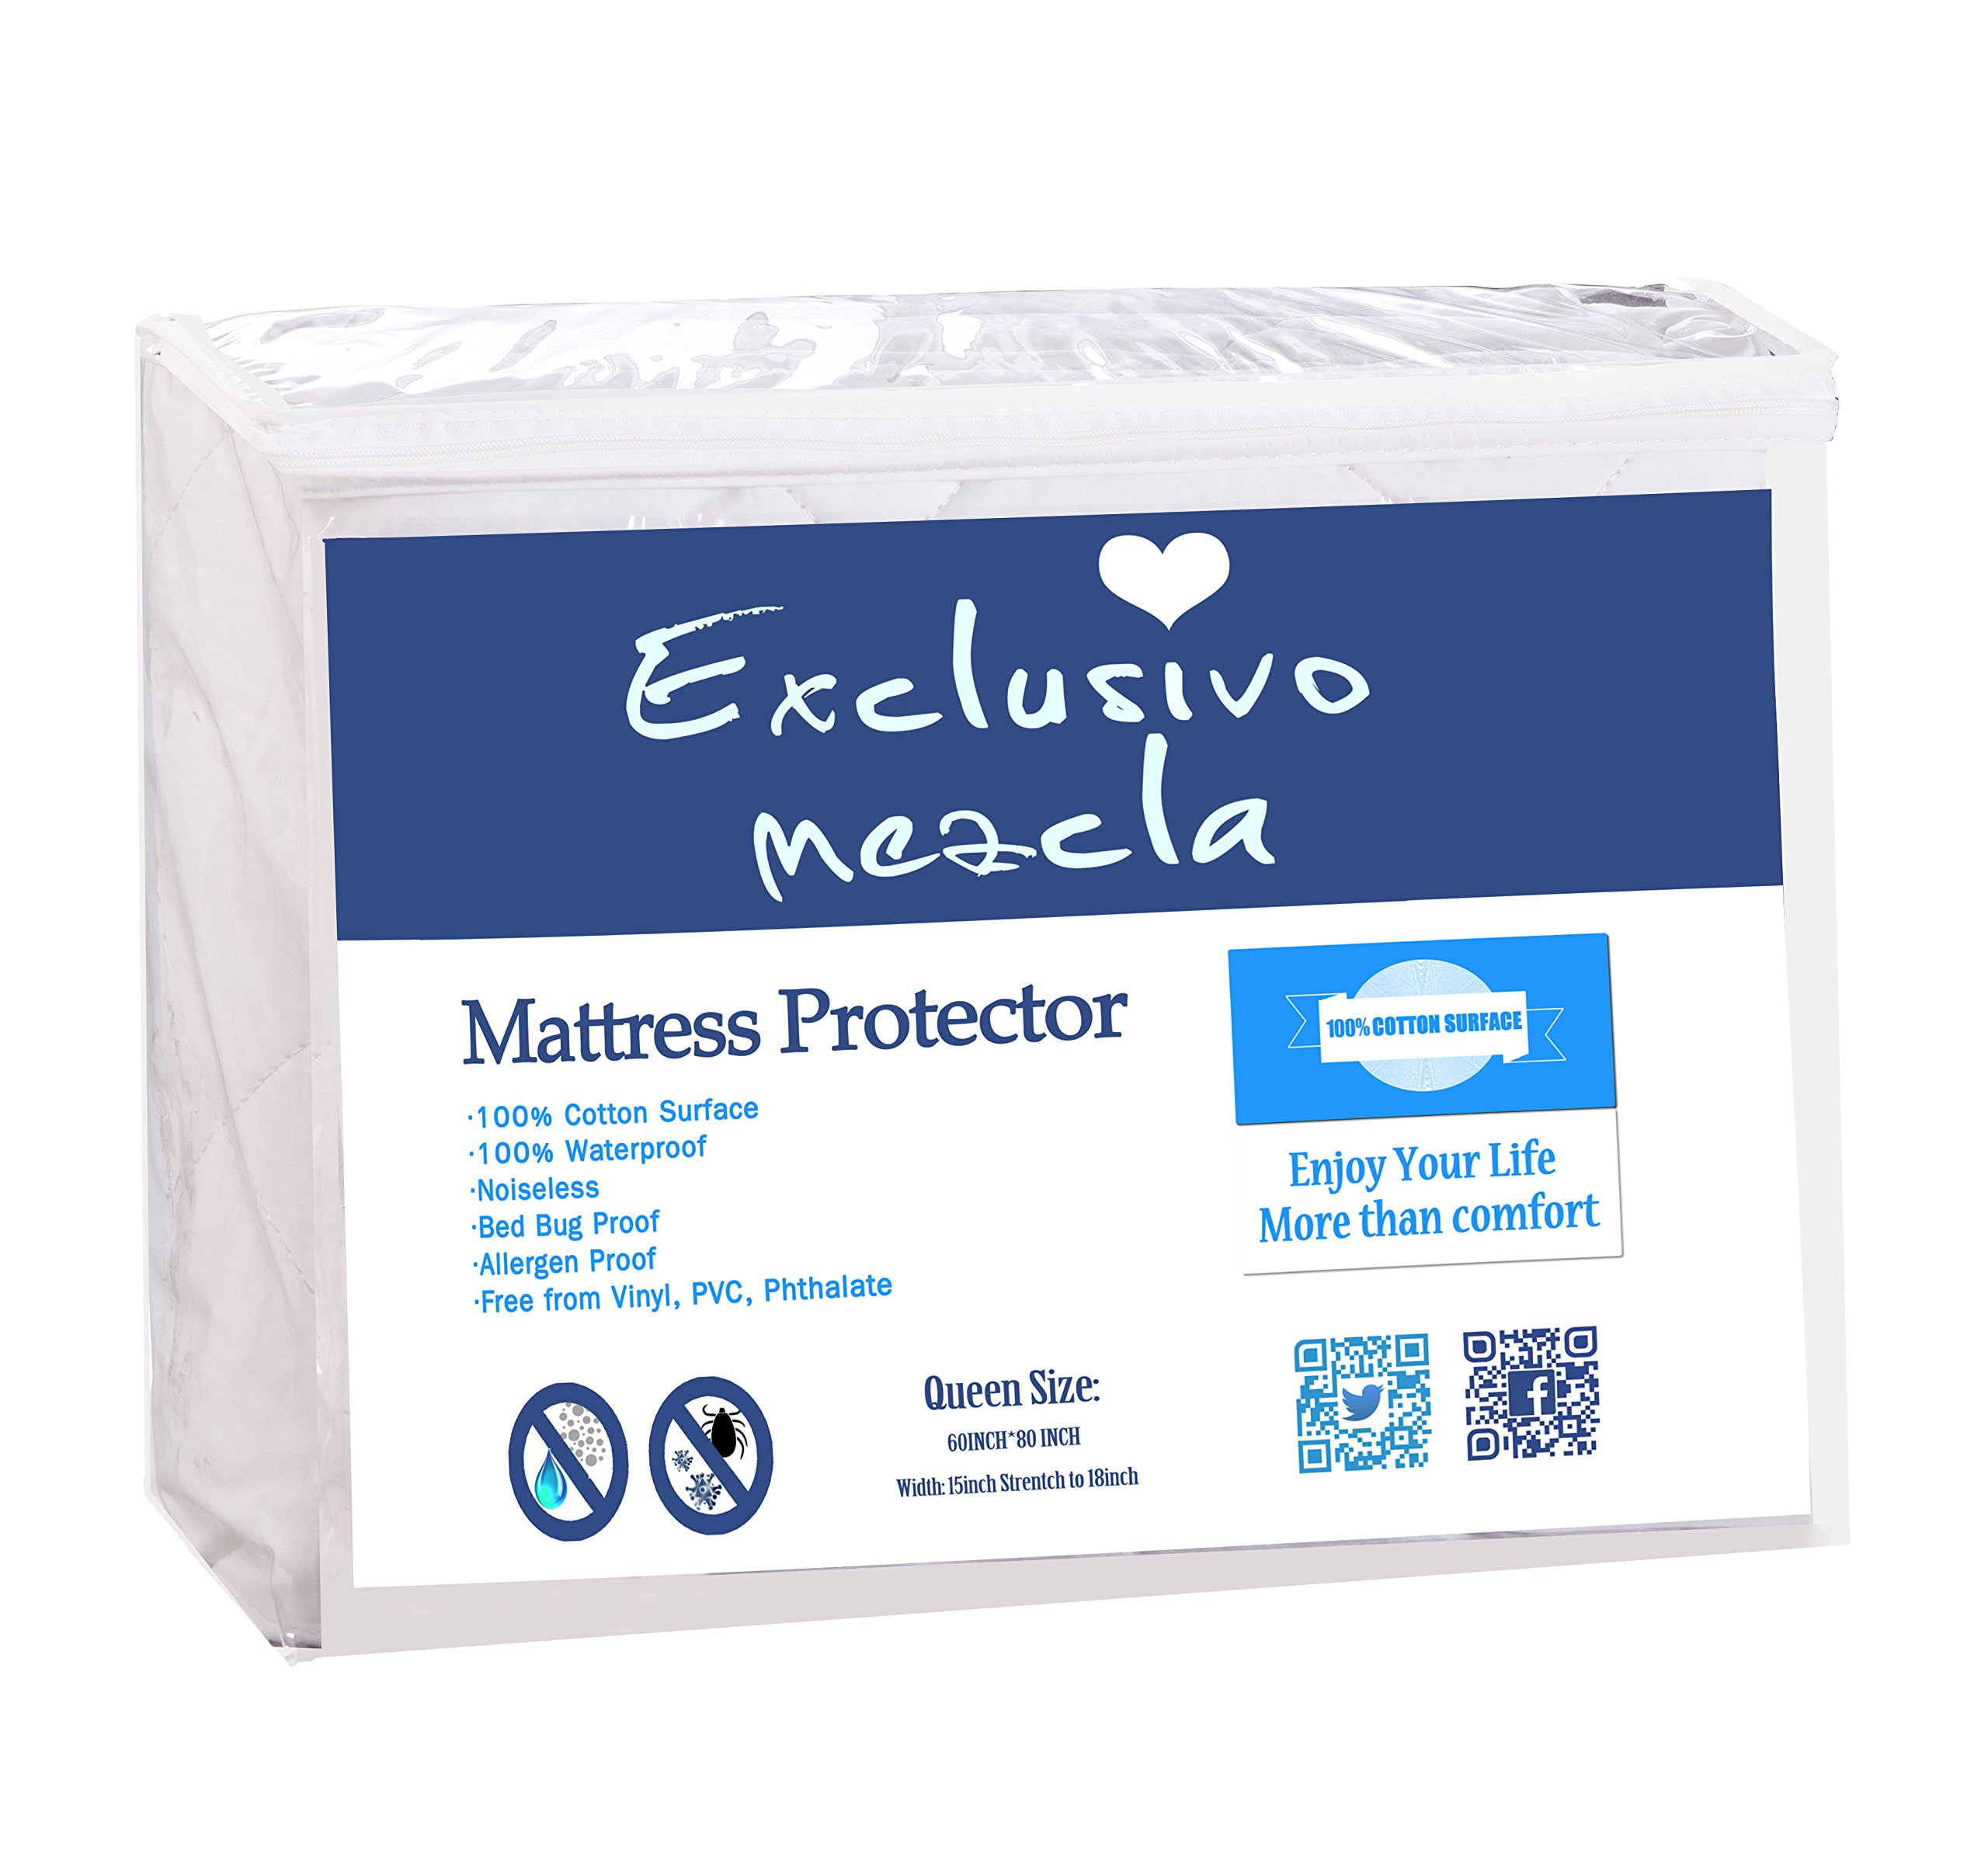 Exclusivo Mezcla 100% Cotton Quilted Bed Cover Fitted Twin Size Mattress Protector/Cover(39'' x 75'')- Waterproof, Noiseless& Hypoallergenic by Exclusivo Mezcla (Image #6)